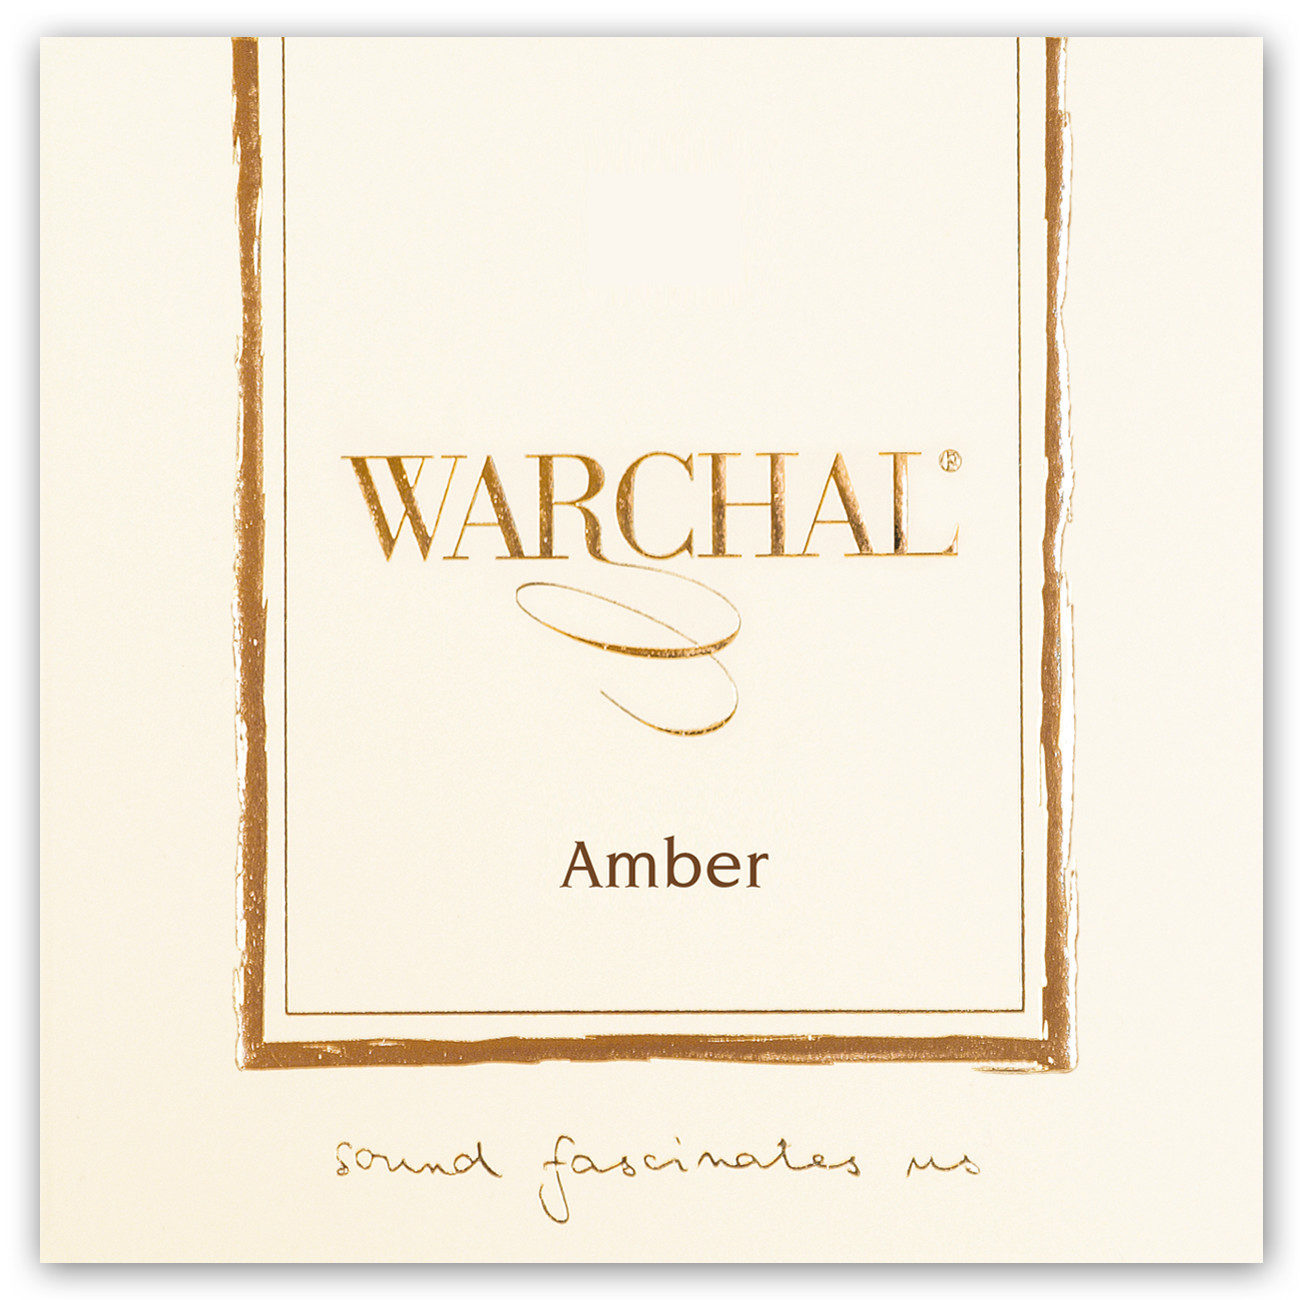 Warchal Amber Violin A